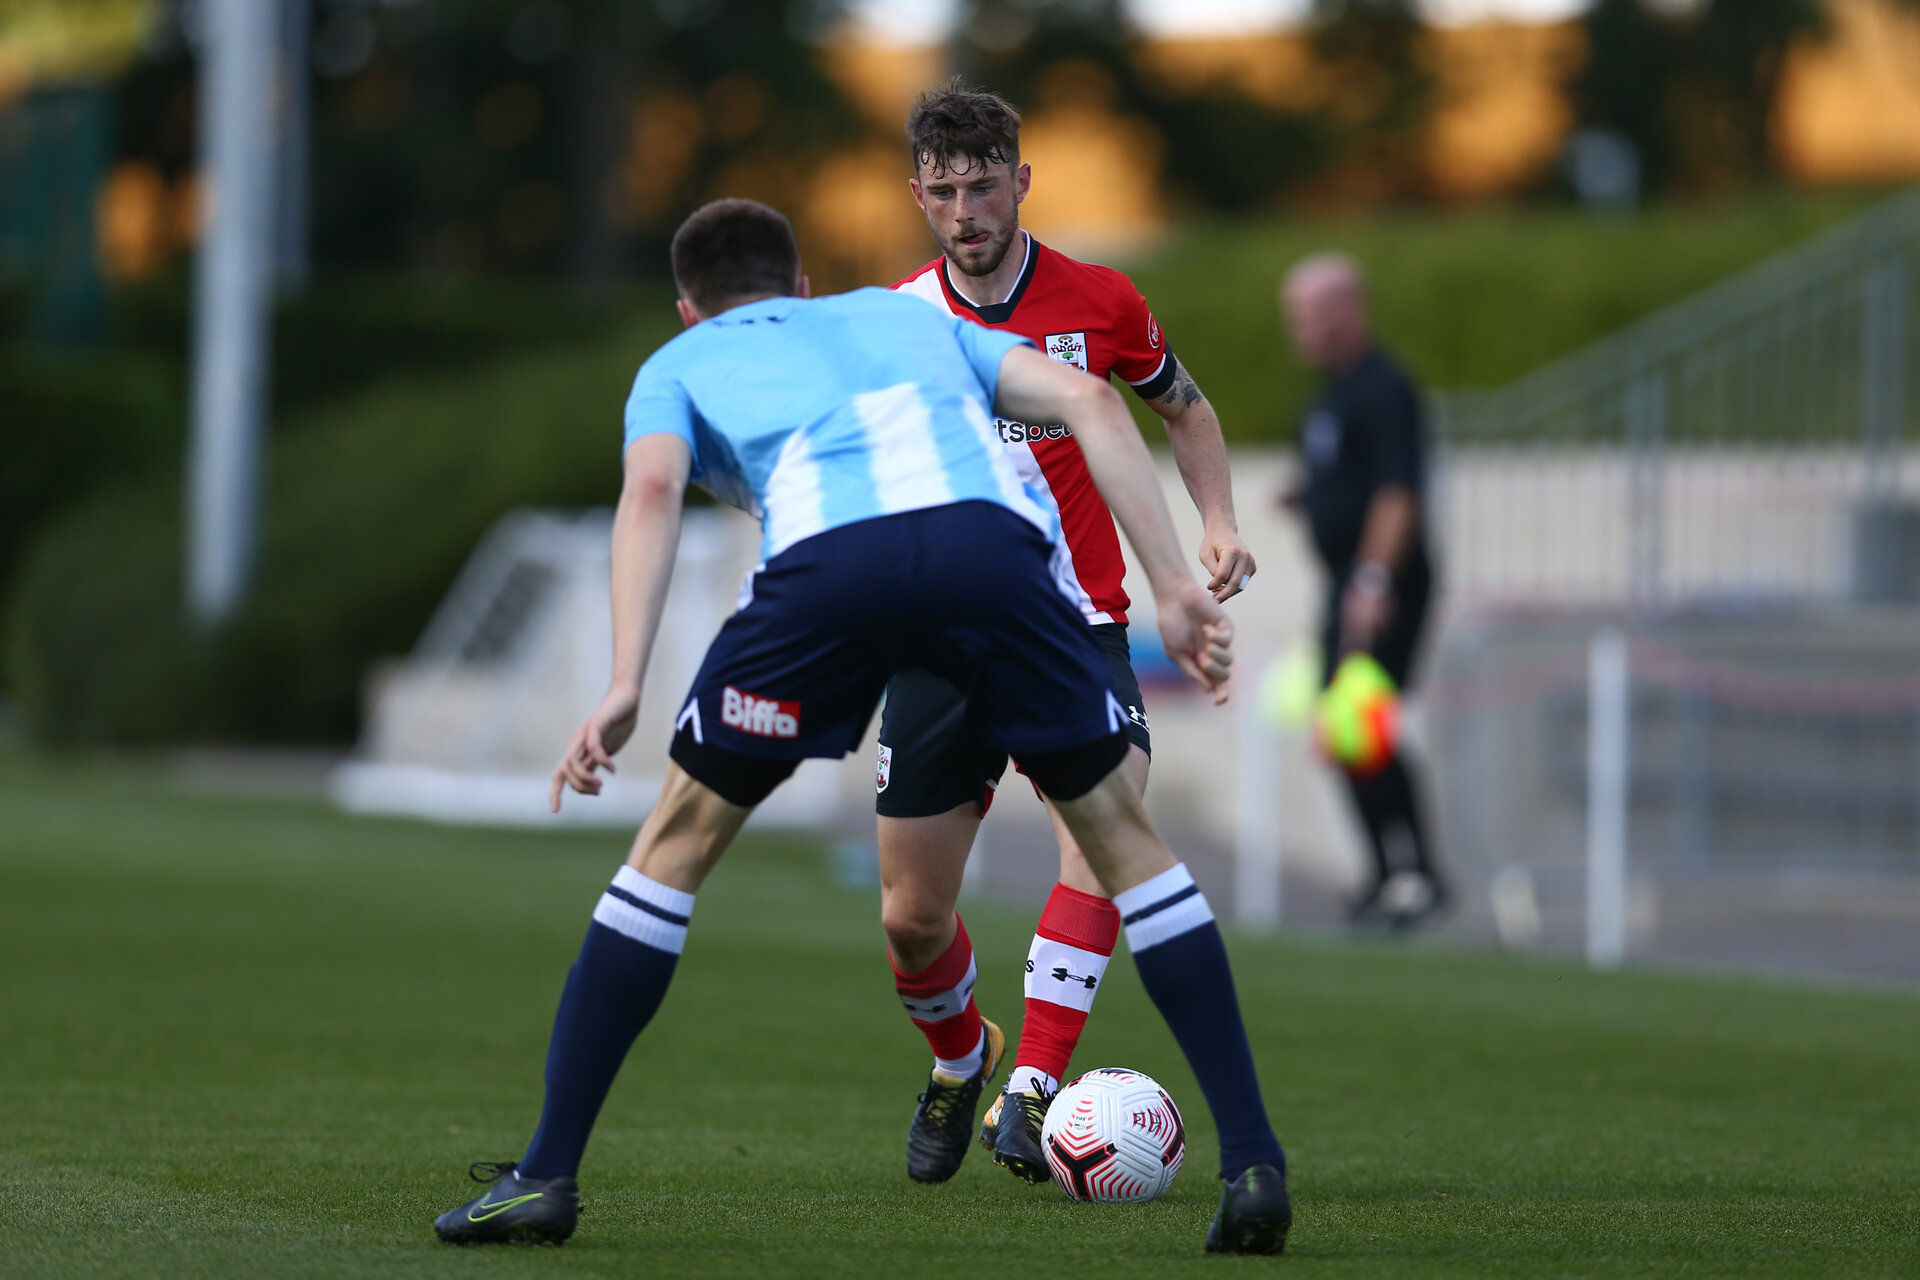 SOUTHAMPTON, ENGLAND - SEPTEMBER 05:  during a Southampton FC U23 pre season friendly against Working FC at Staplewood Campus on September 05, 2020 in Southampton, England. (Photo by Isabelle Field/Southampton FC)